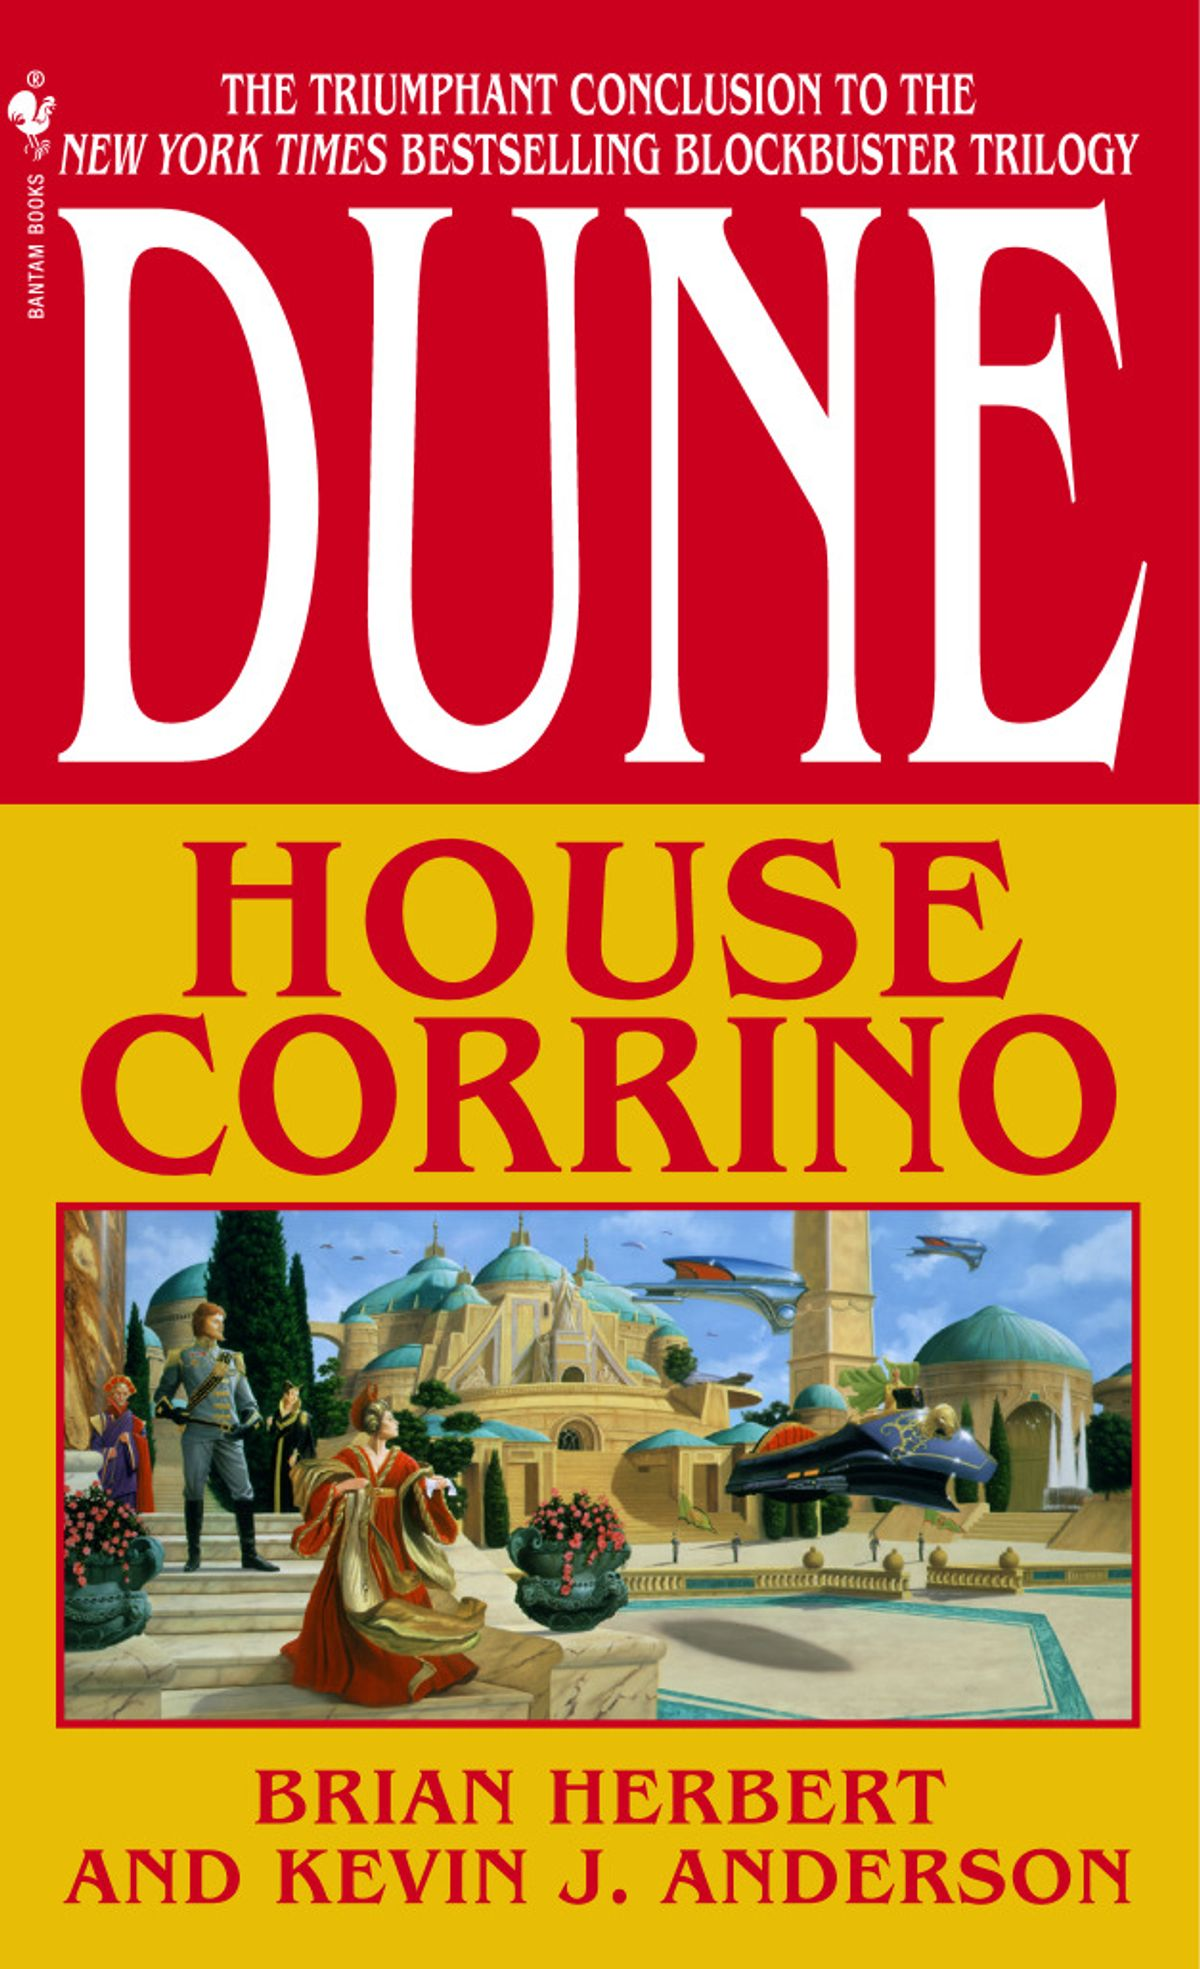 Dune-House-Corrino-cover-Brian-Herbert-and-Kevin-J.-Anderson